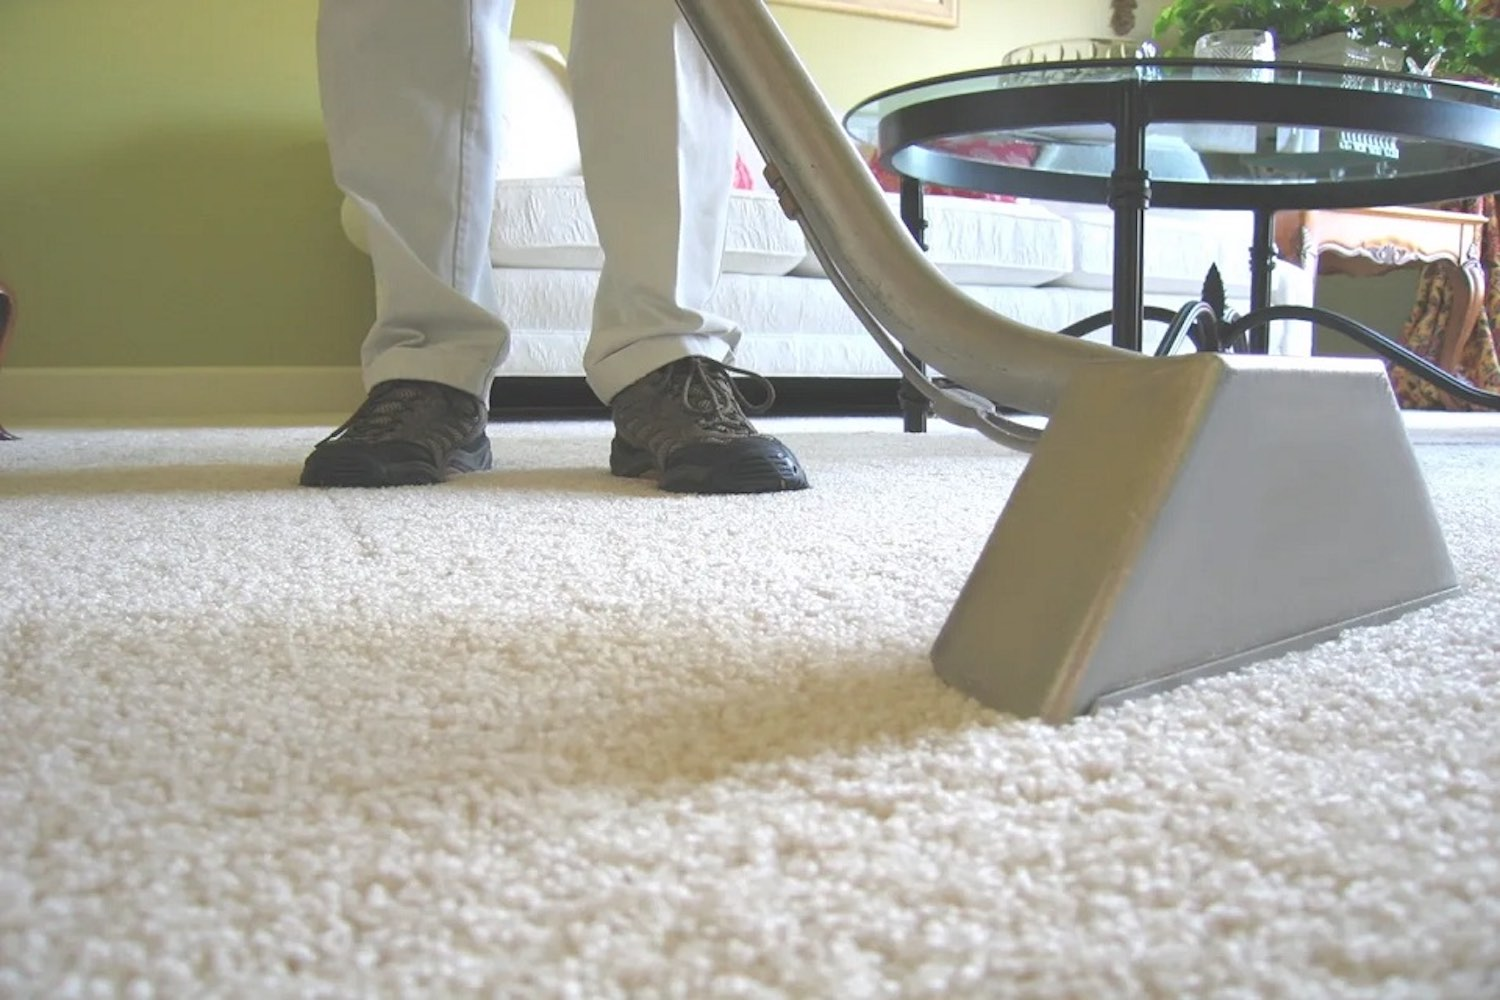 How To Clean Dirty Carpets Professionally?